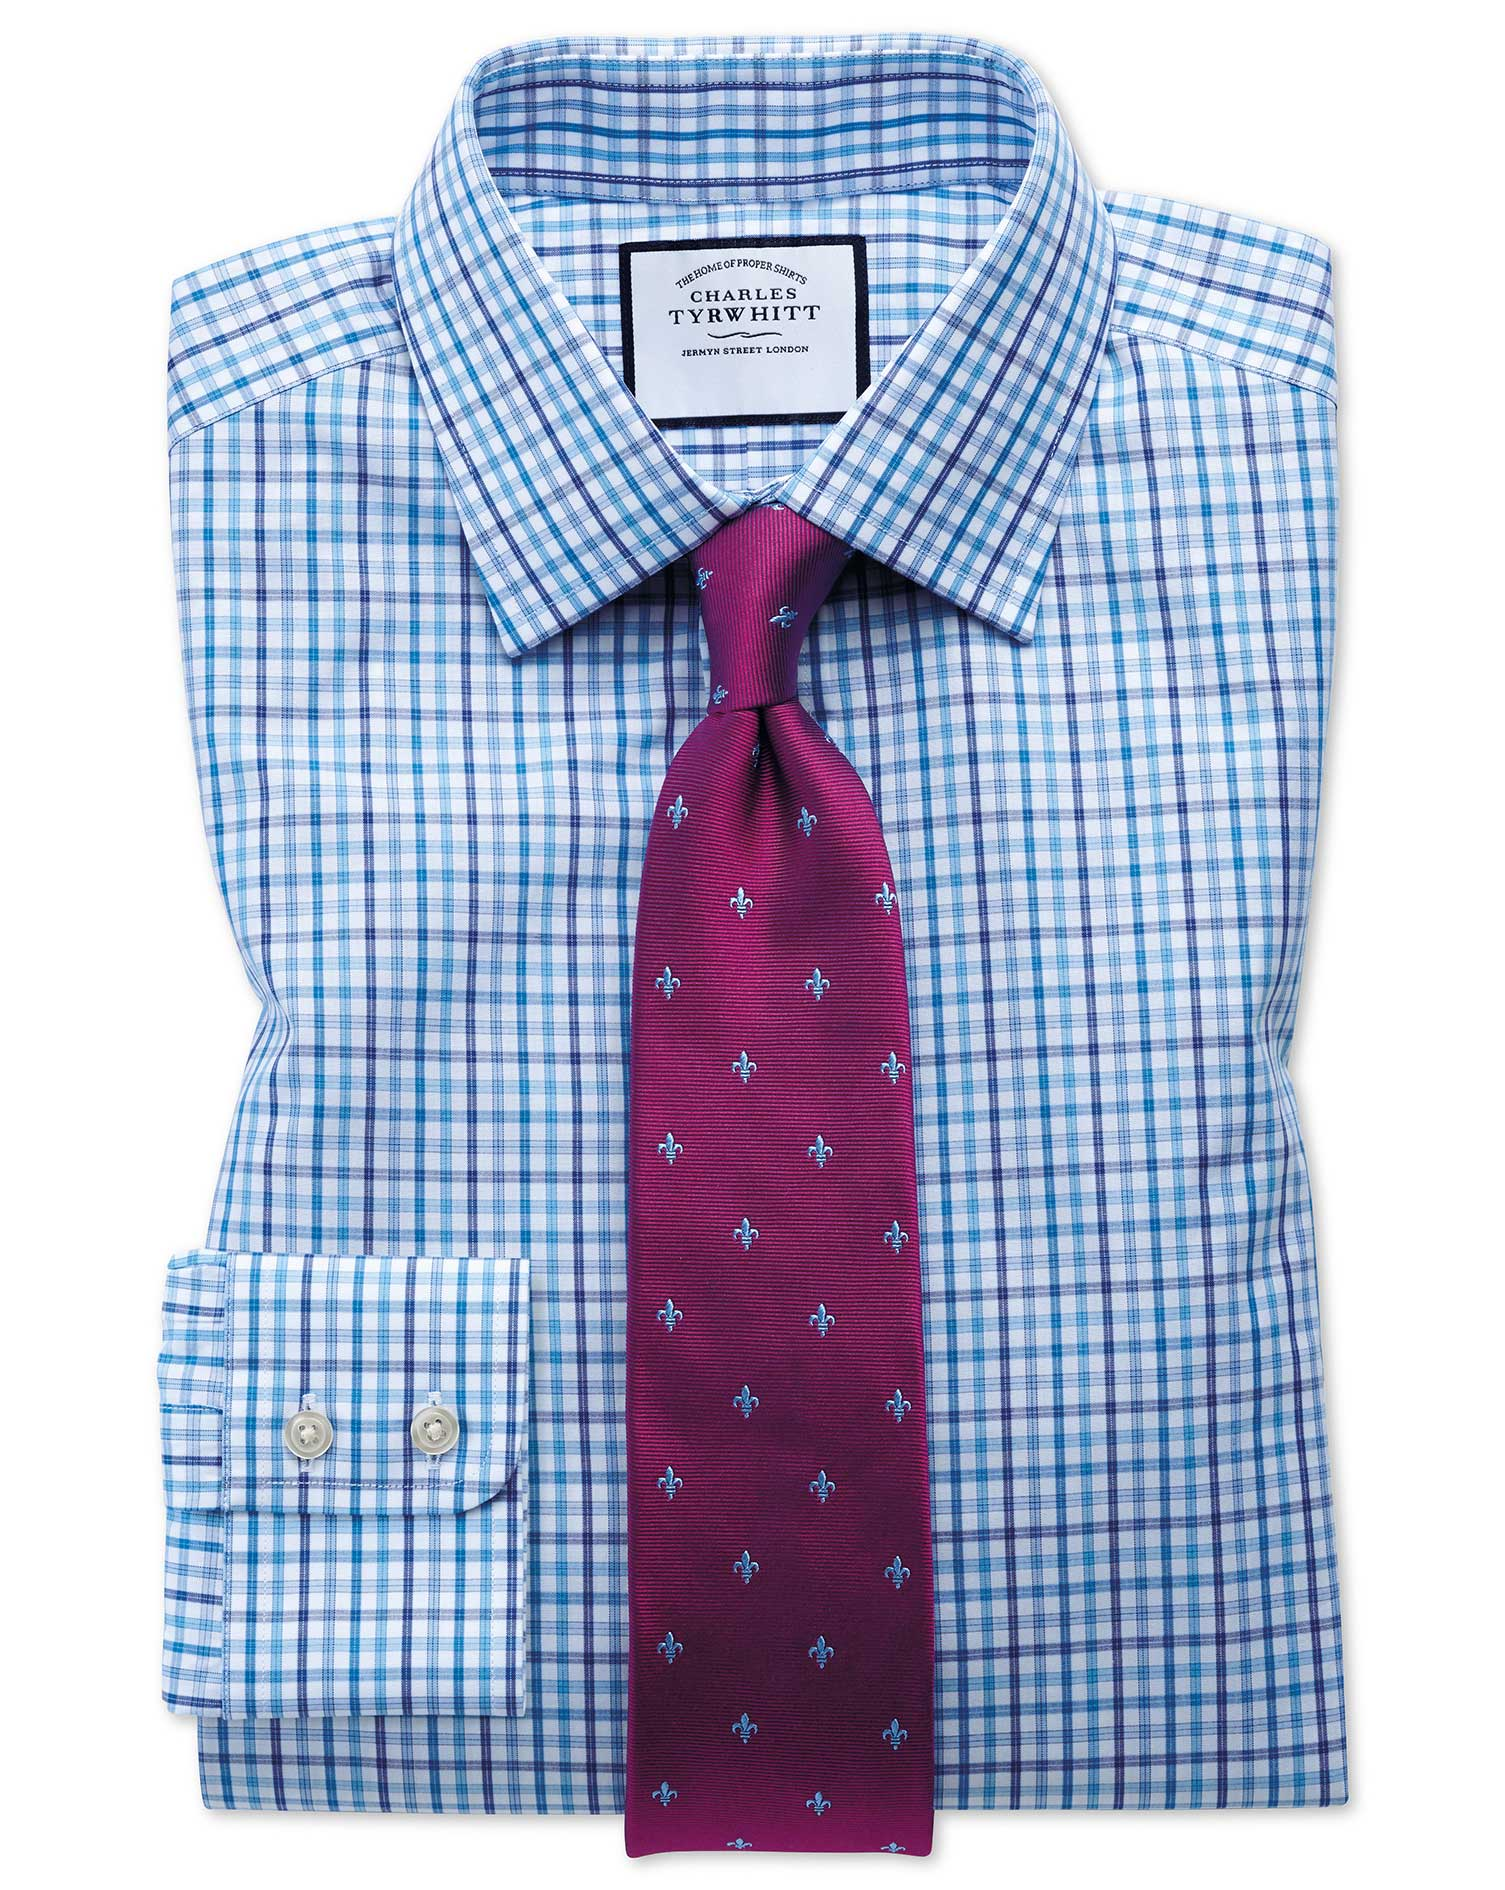 Extra Slim Fit Poplin Multi Blue Check Cotton Formal Shirt Double Cuff Size 15/34 by Charles Tyrwhit